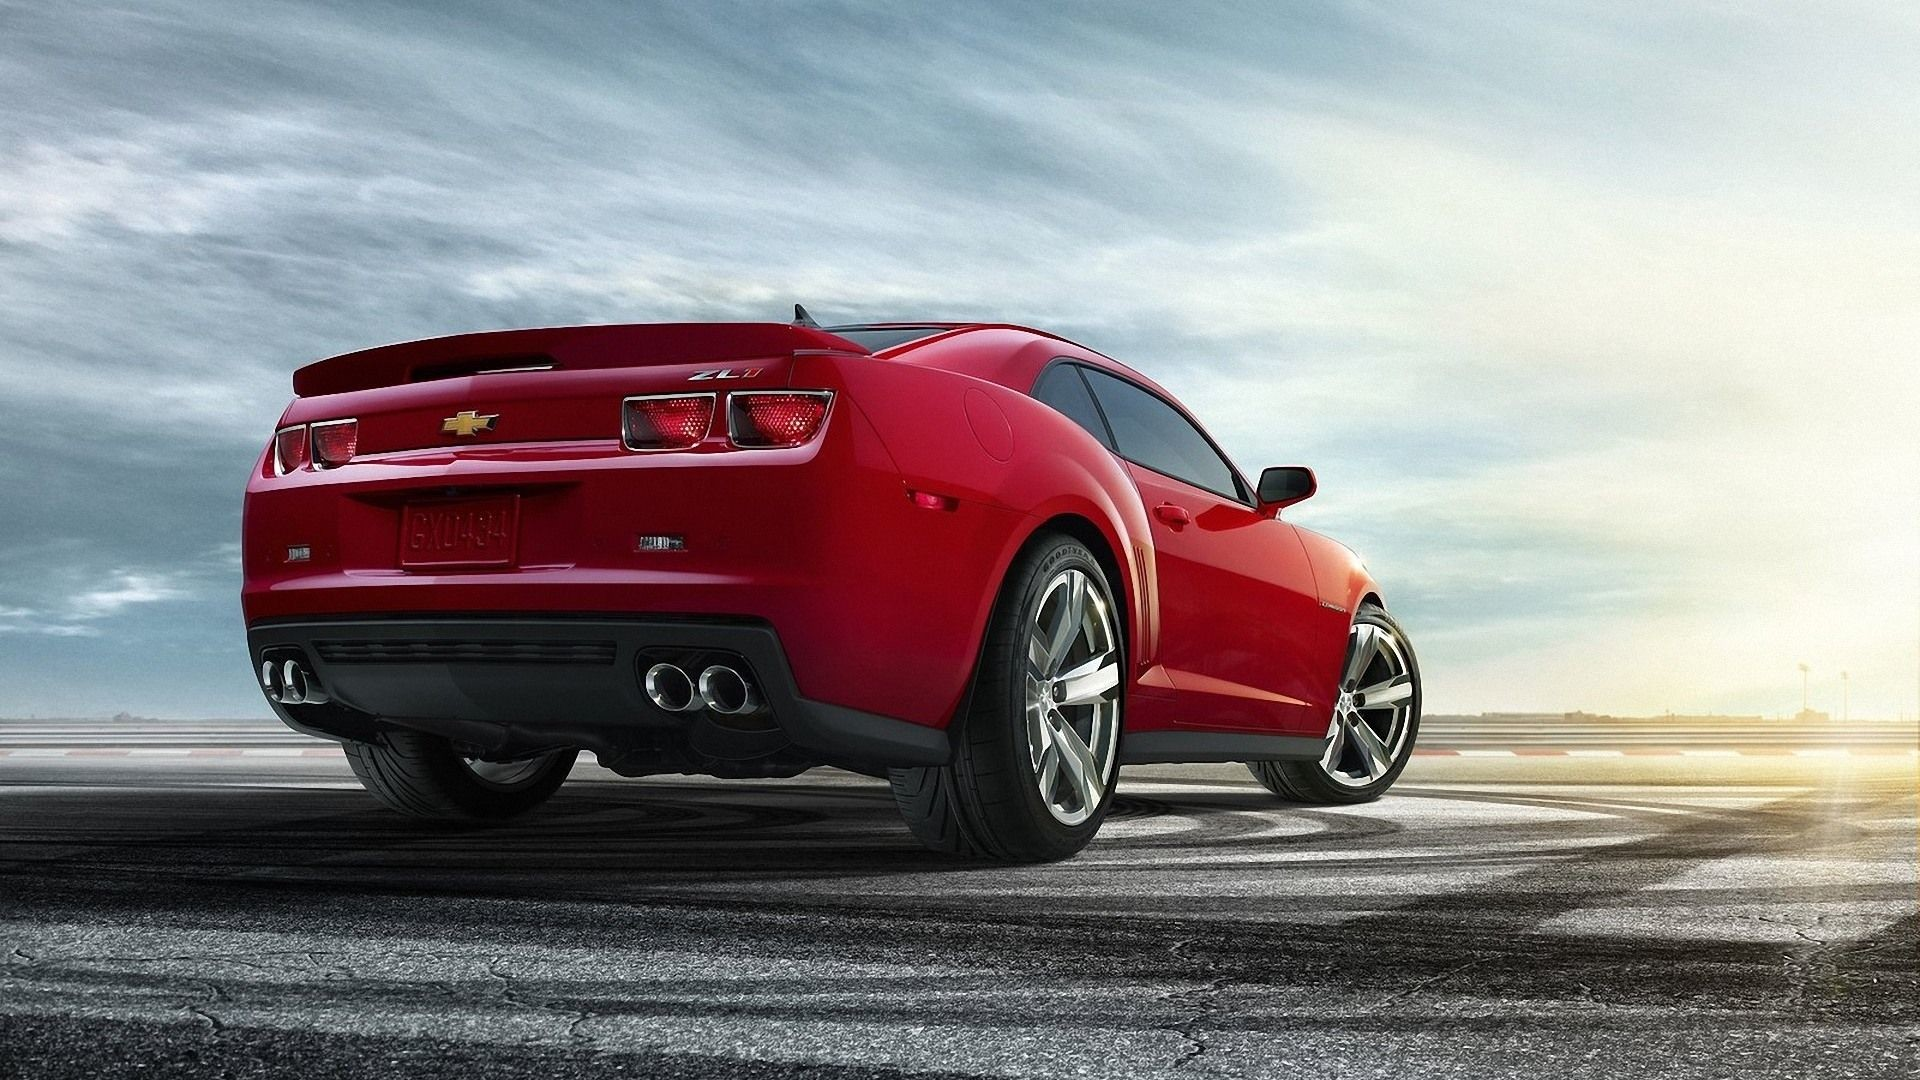 1920x1080 Chevrolet Camaro ZL1 wallpaper  Wallpapers,Chevrolet .